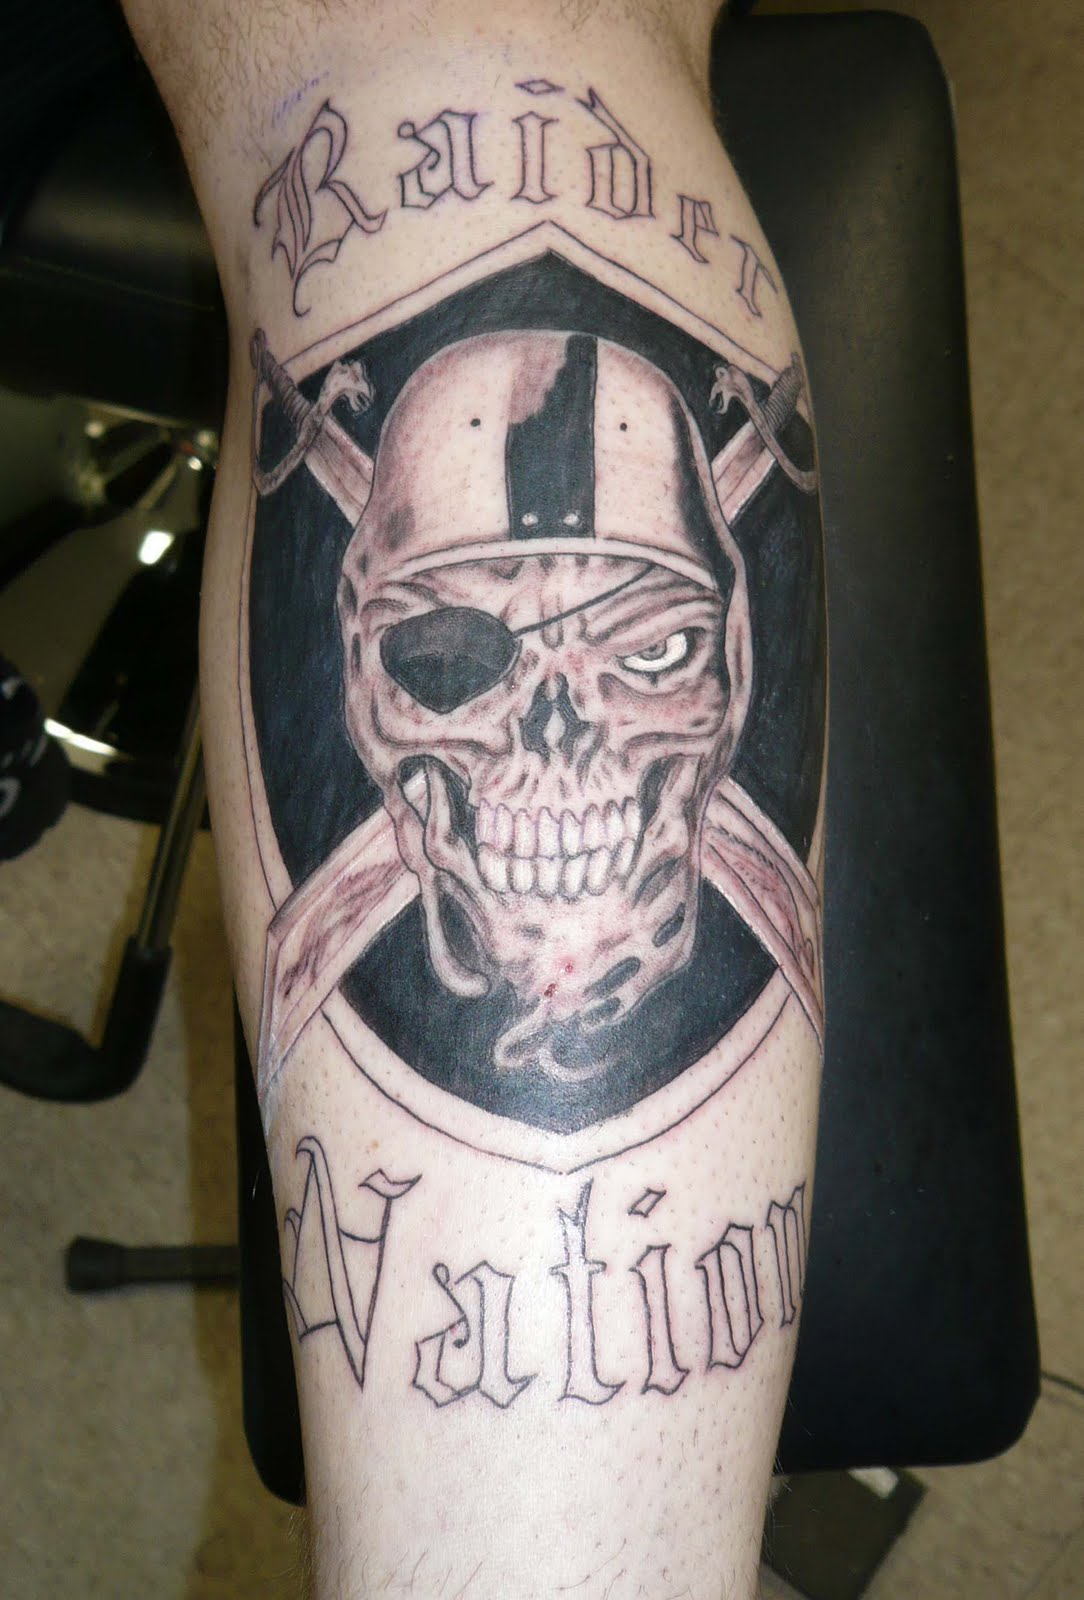 Oakland Raider Tattoo Designs http://tattooconnection.com/category/oakland-raiders-tattoo/